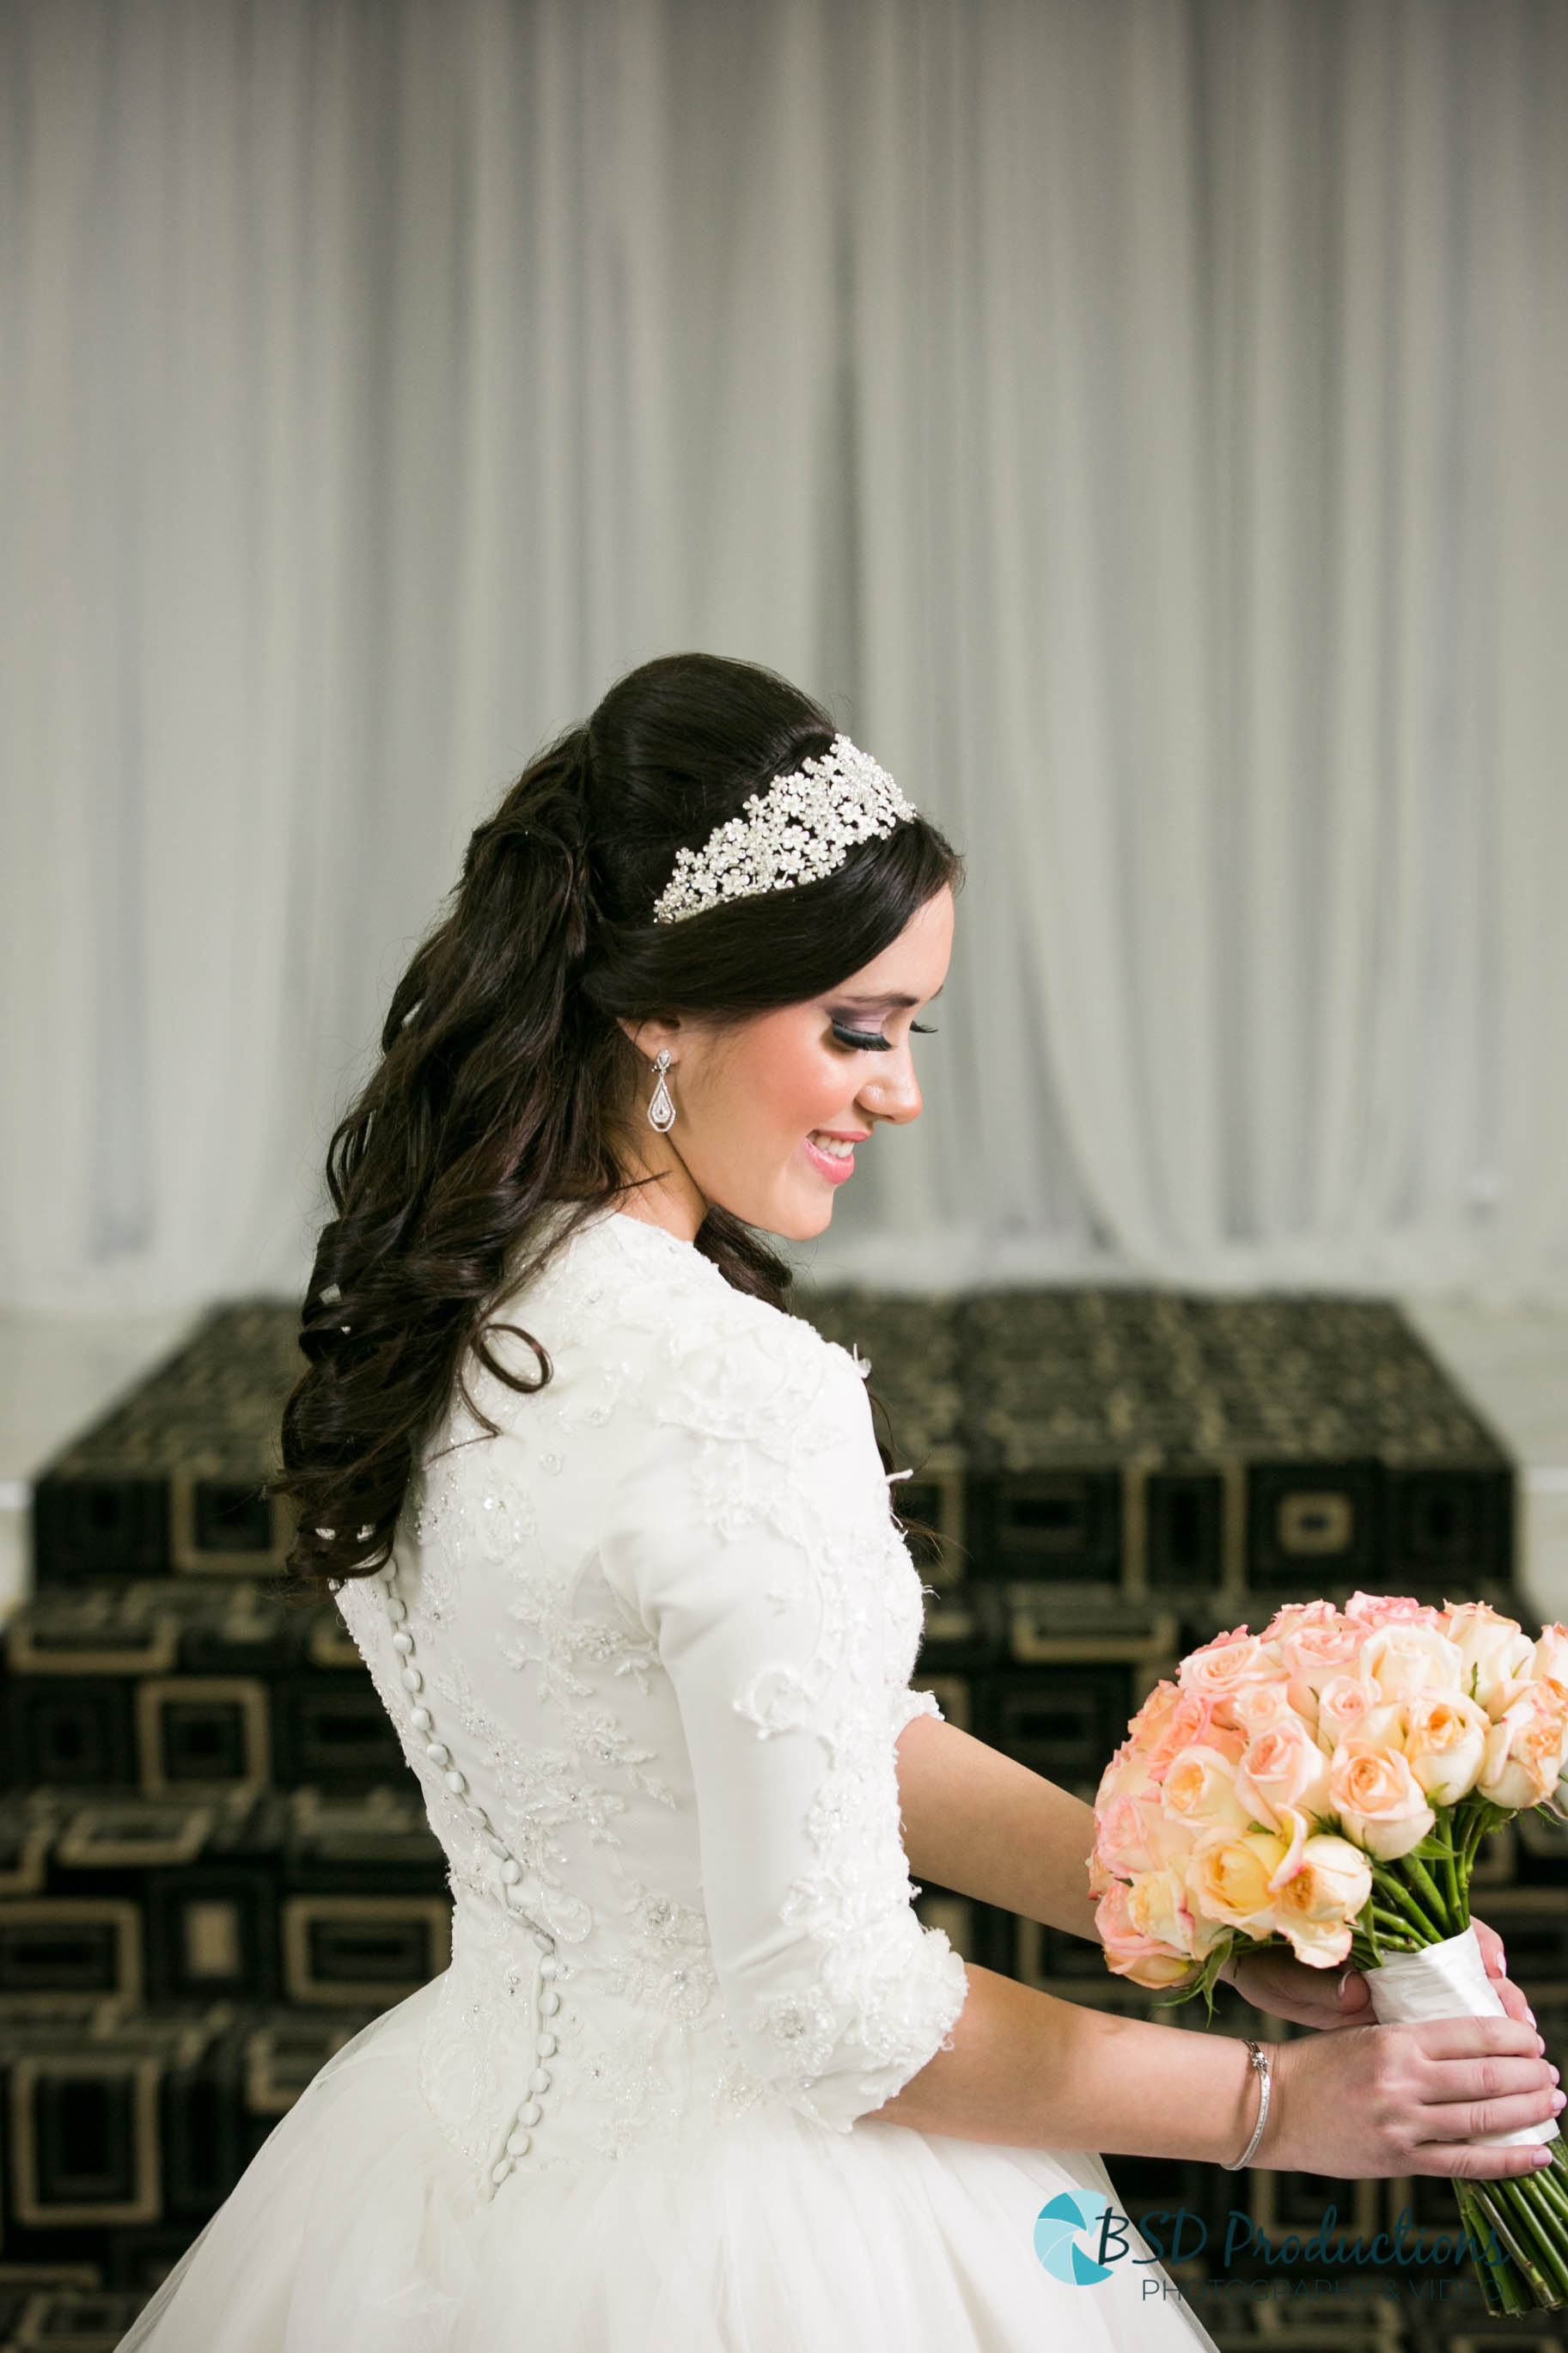 UH5A0905 Wedding – BSD Productions Photography